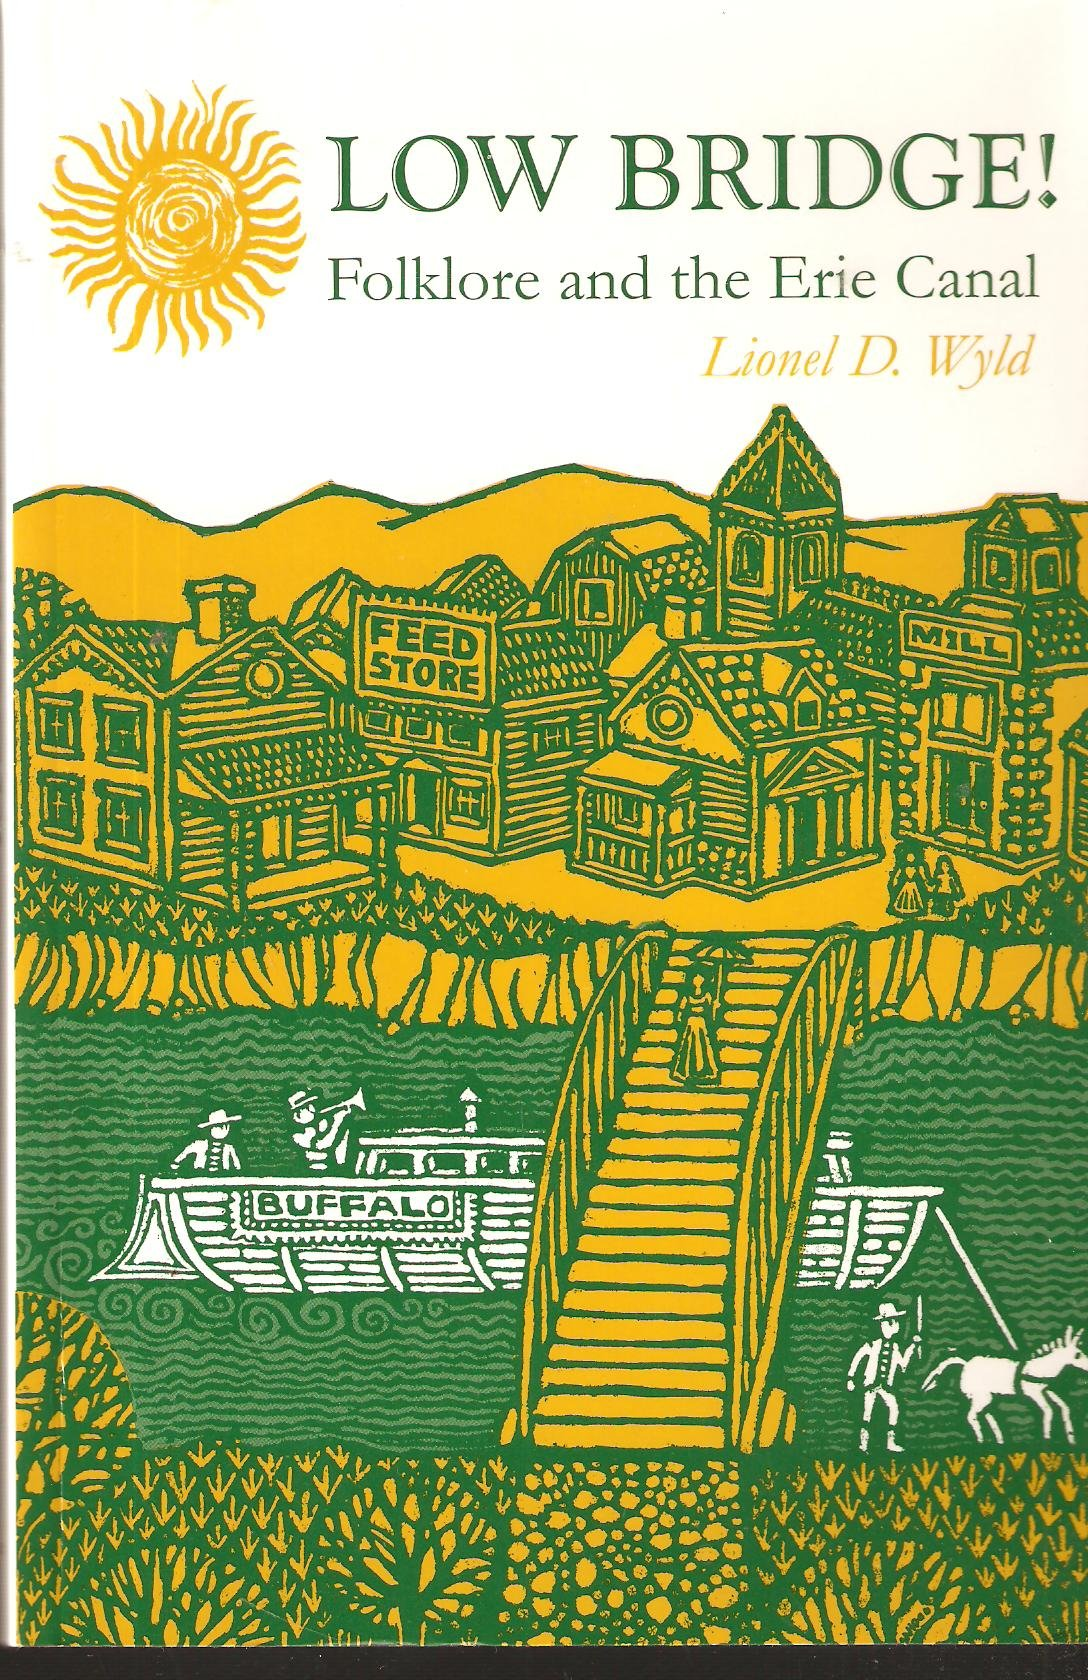 Low Bridge!: Folklore and the Erie Canal (York State Books) ePub fb2 ebook